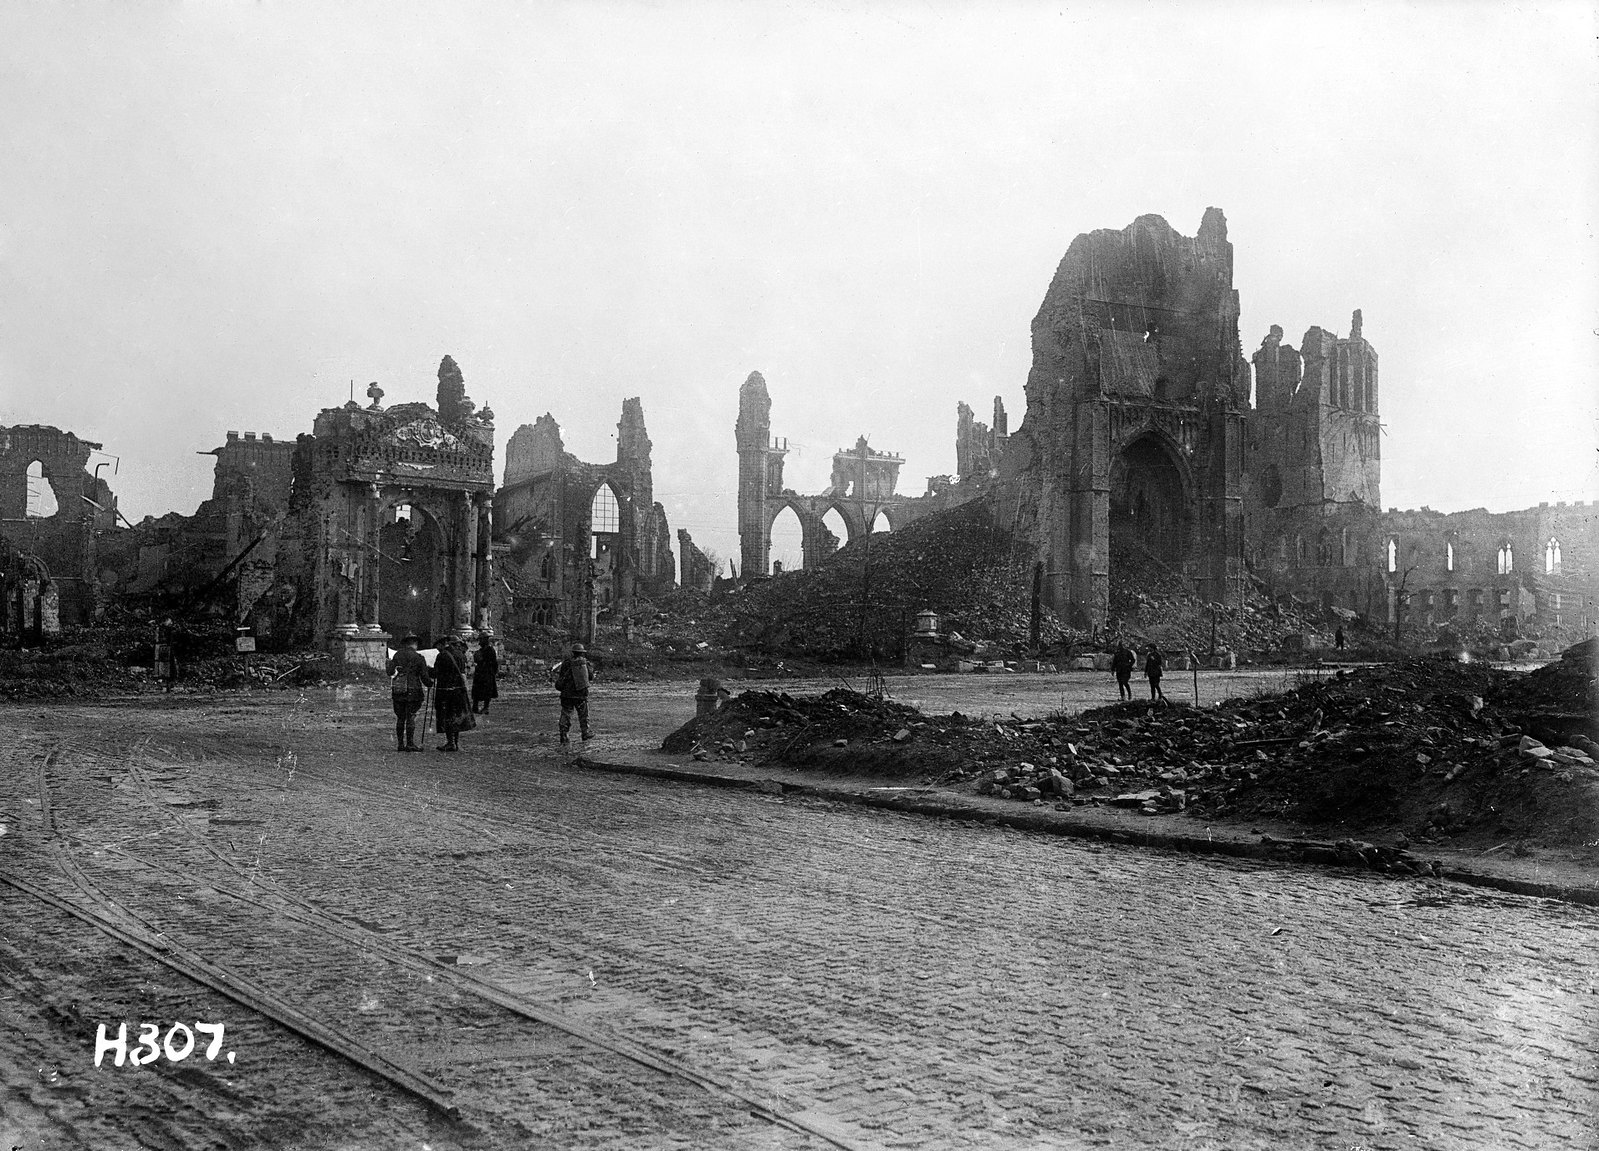 The ruins of Ypres, Belgium